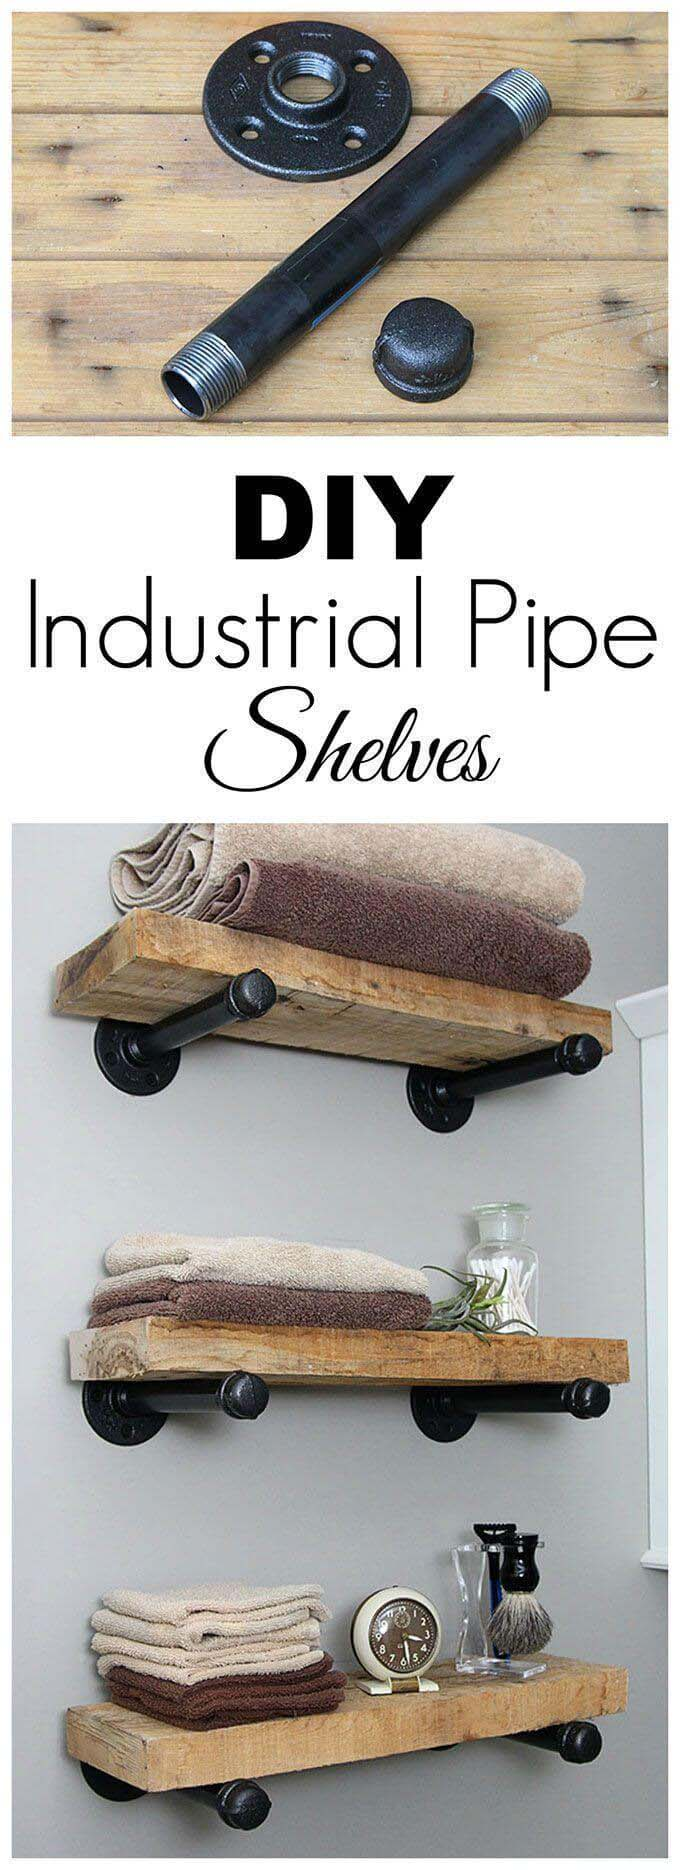 DIY Industrial Pipe Shelves #reclaimed #wood #projects #decorhomeideas